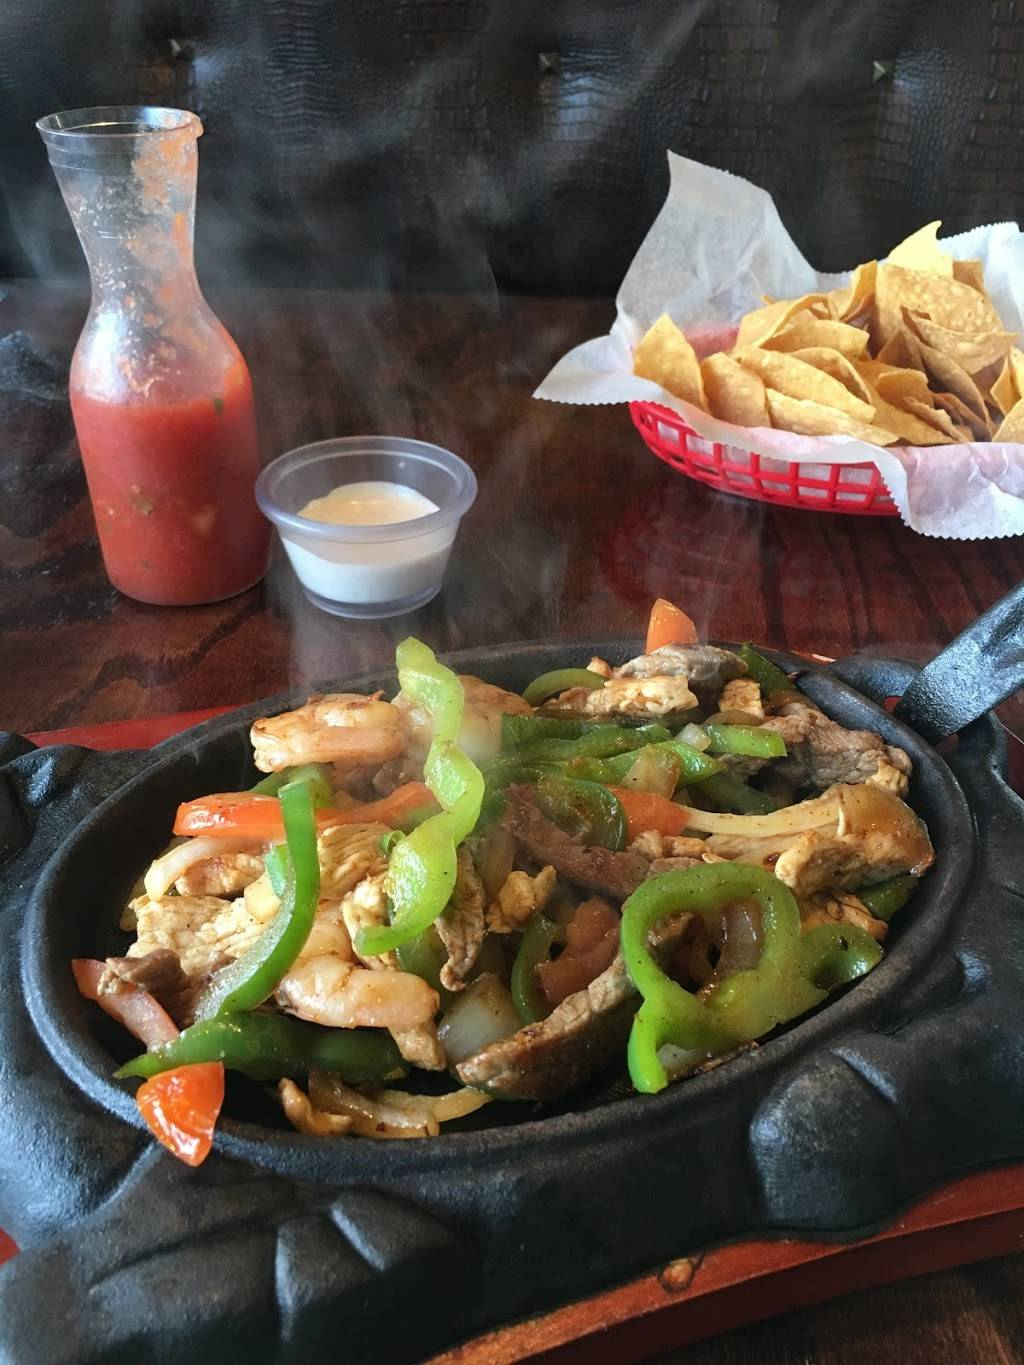 El Rodeo Mexican Restaurant | restaurant | 2642 Madison Ave, Granite City, IL 62040, USA | 6184517672 OR +1 618-451-7672